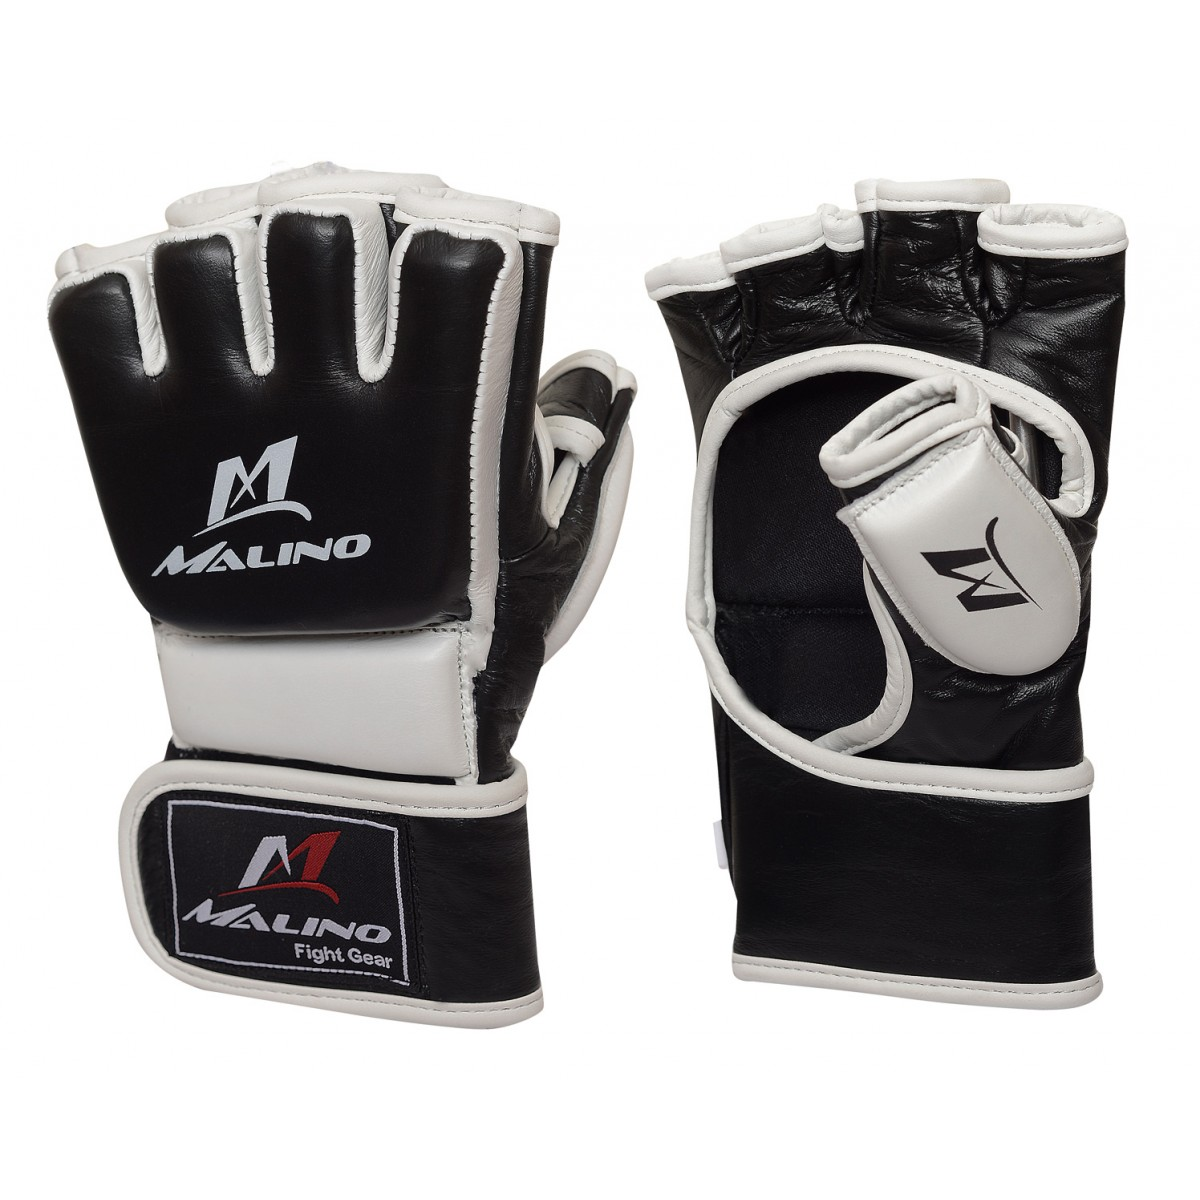 MMA Gloves Half Fingers Mix Martial Arts Gloves Black-White New